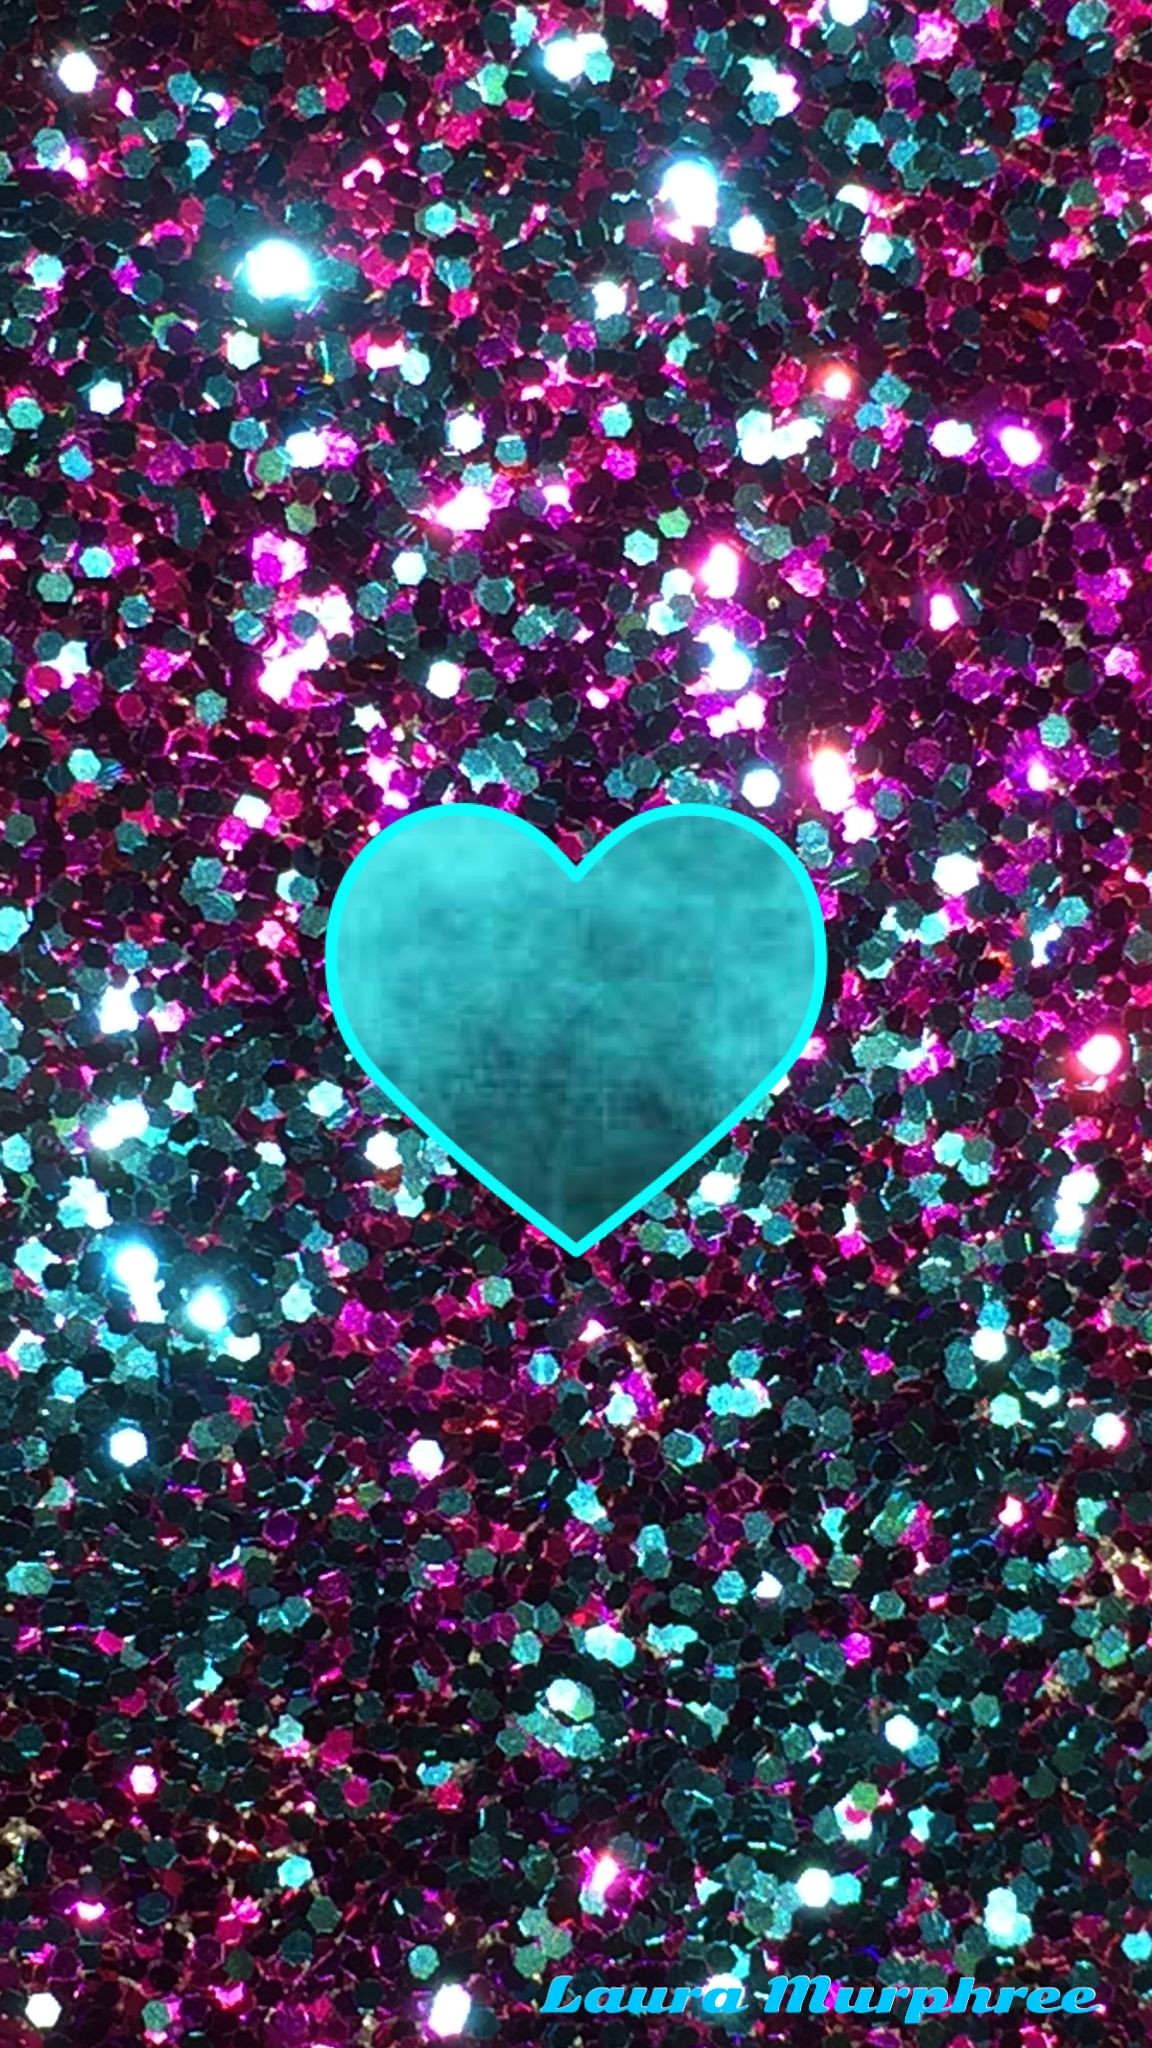 Res: 1152x2048, Glitter phone wallpaper sparkle background sparkling bling sparkles blue pink colorful